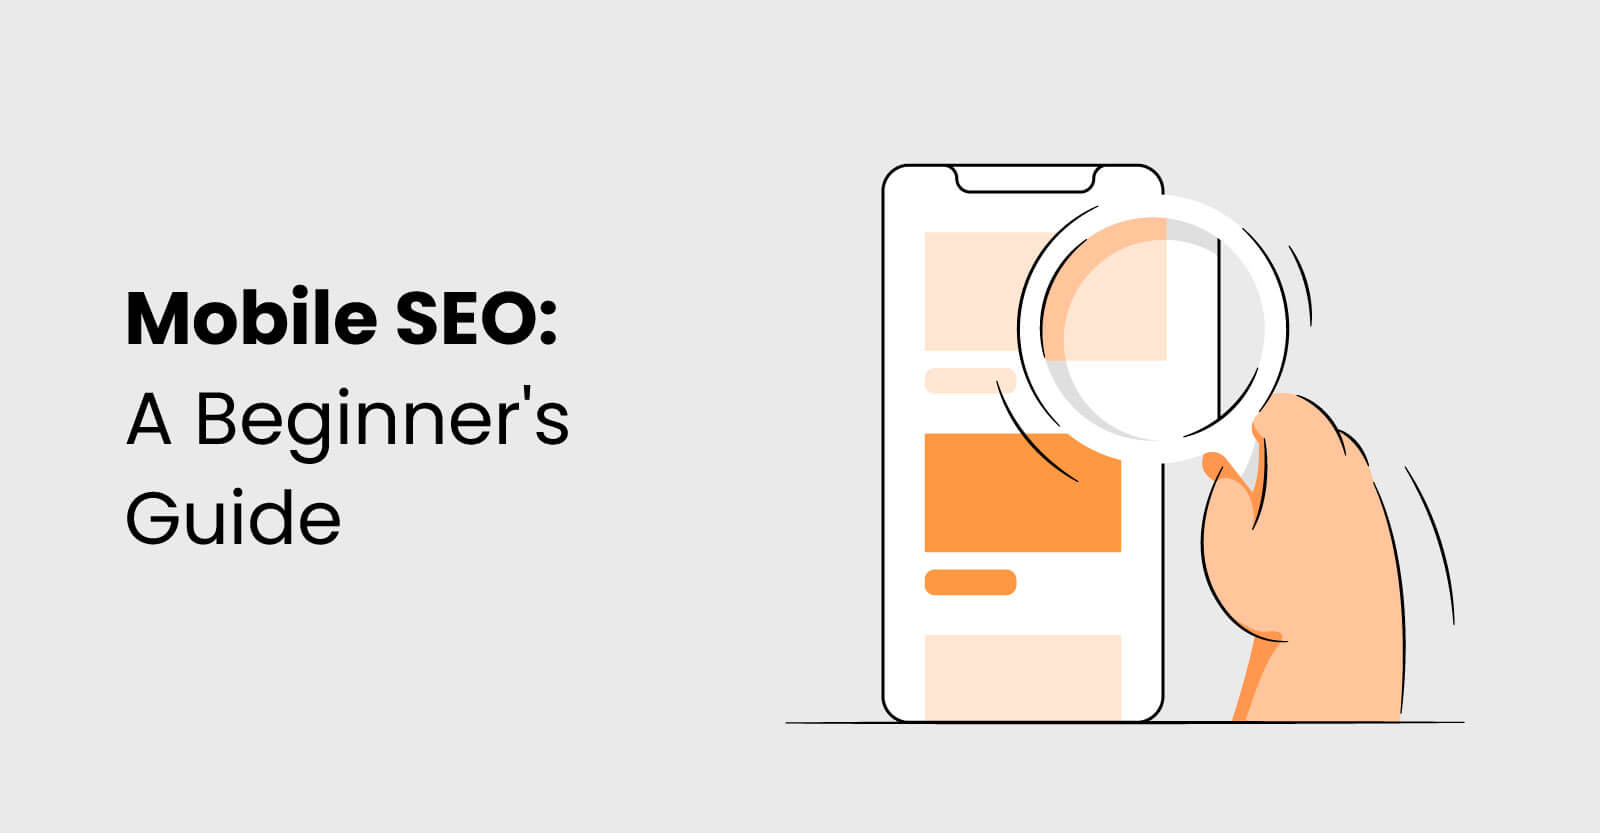 Mobile SEO: A Beginner's Guide